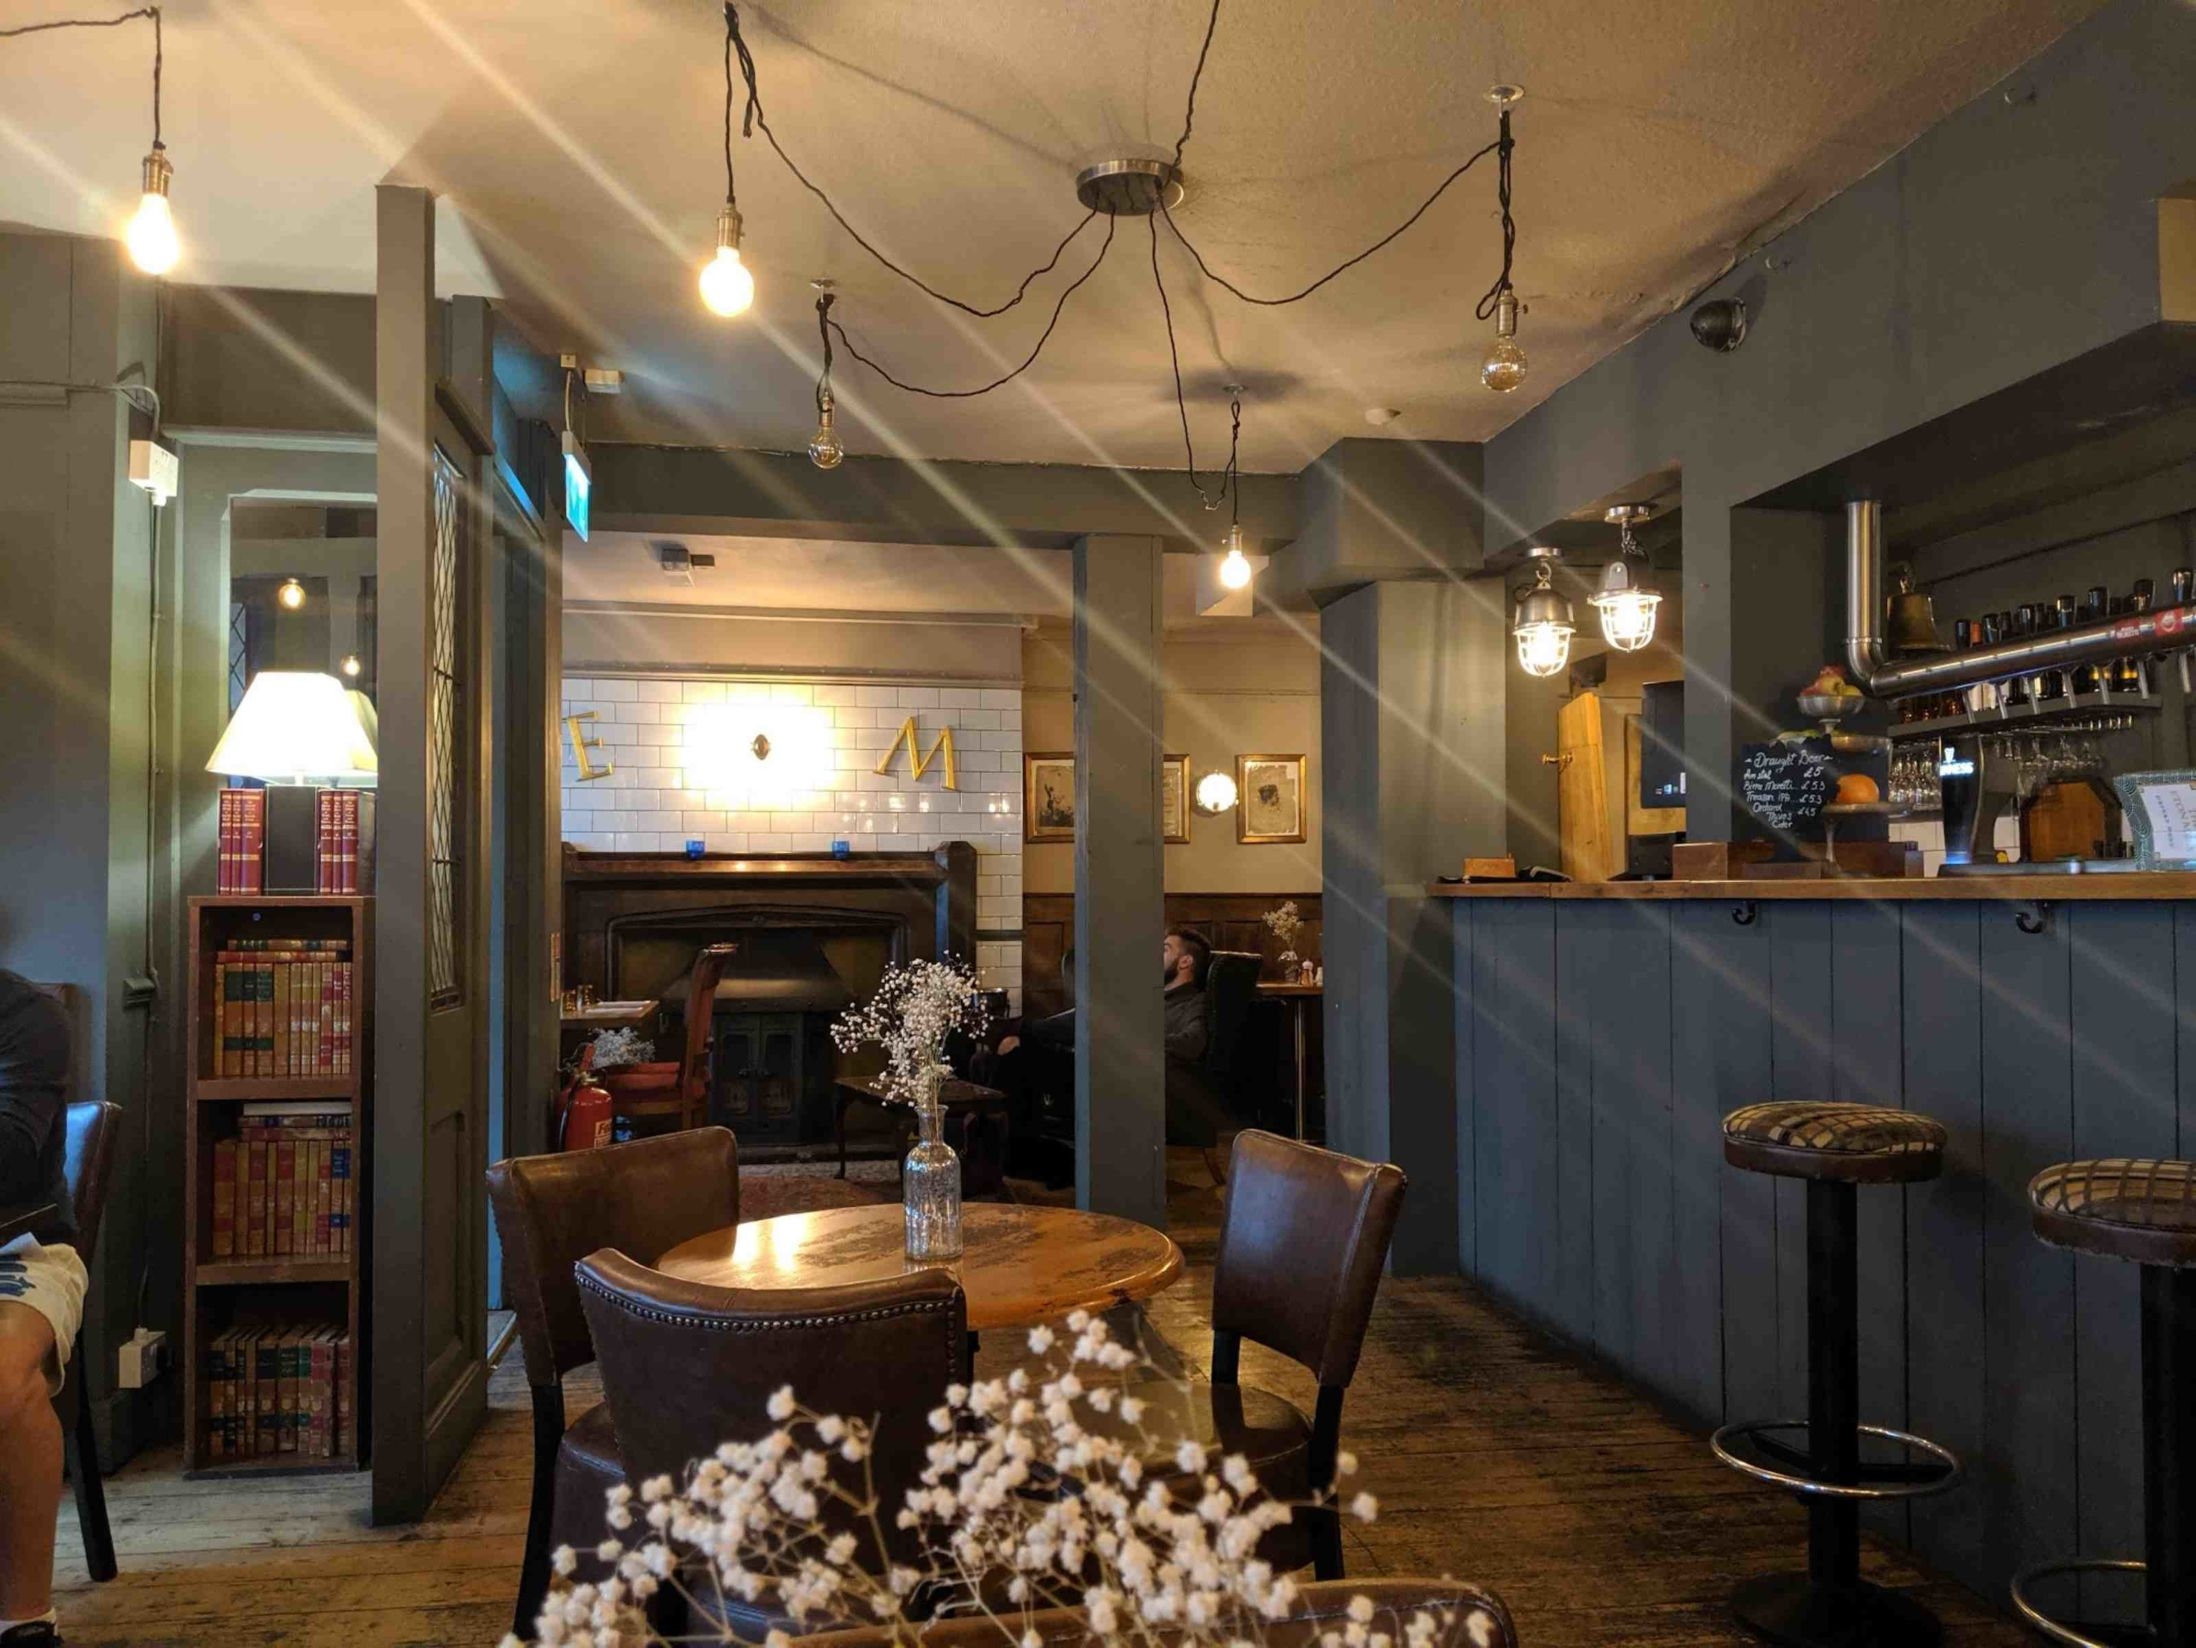 Best Pubs in Windsor - The Eton Mess